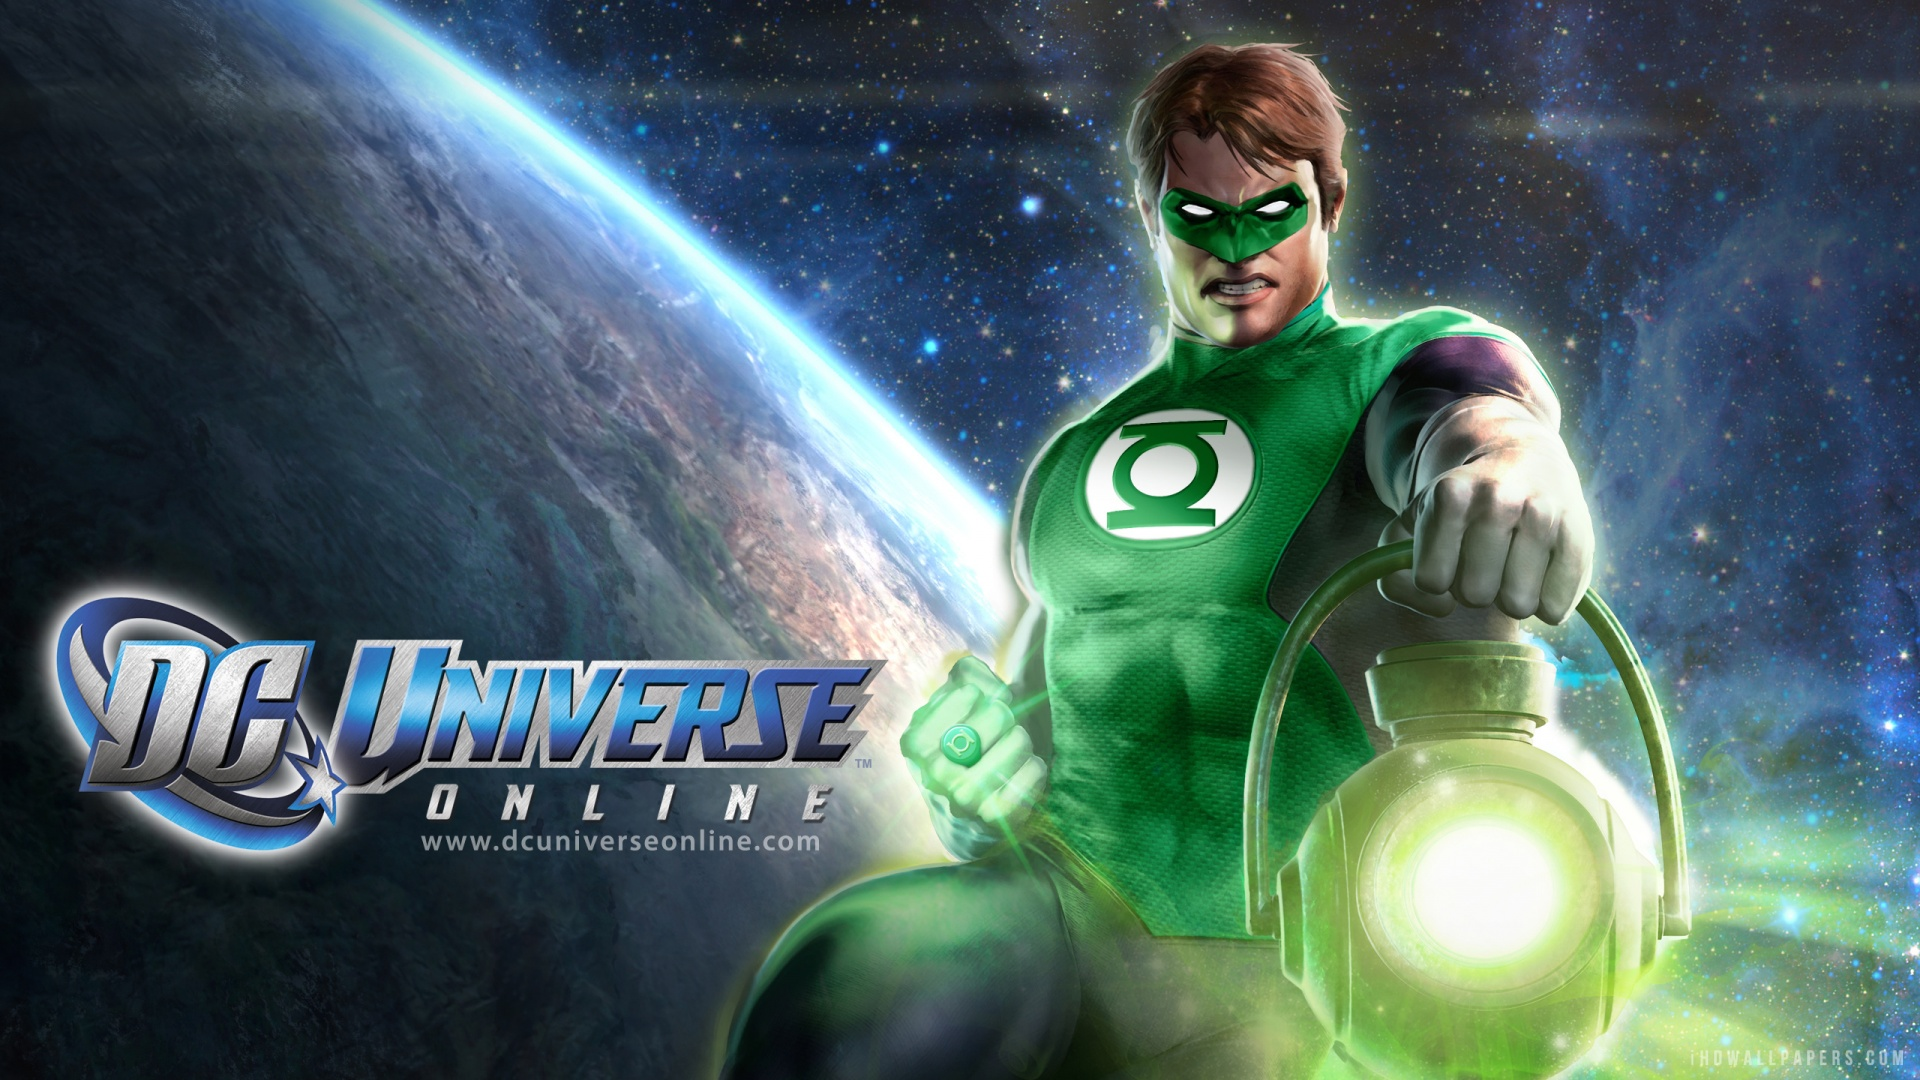 DC Universe Online Green Lantern HD Wallpaper   iHD Wallpapers 1920x1080